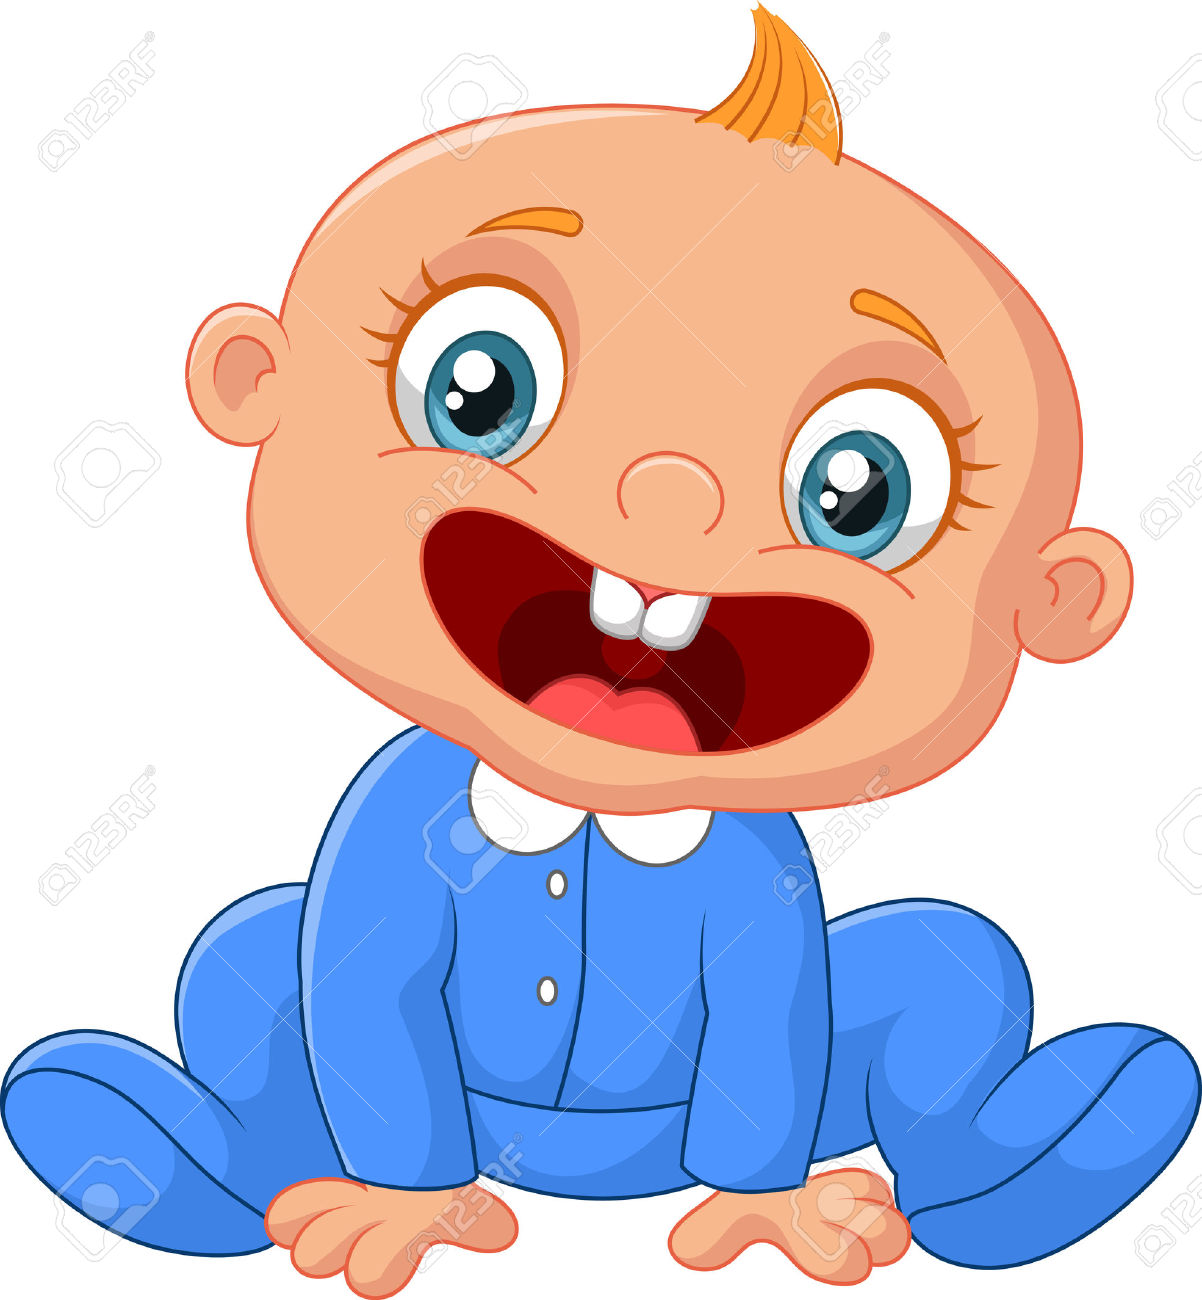 Baby Laughing Clipart